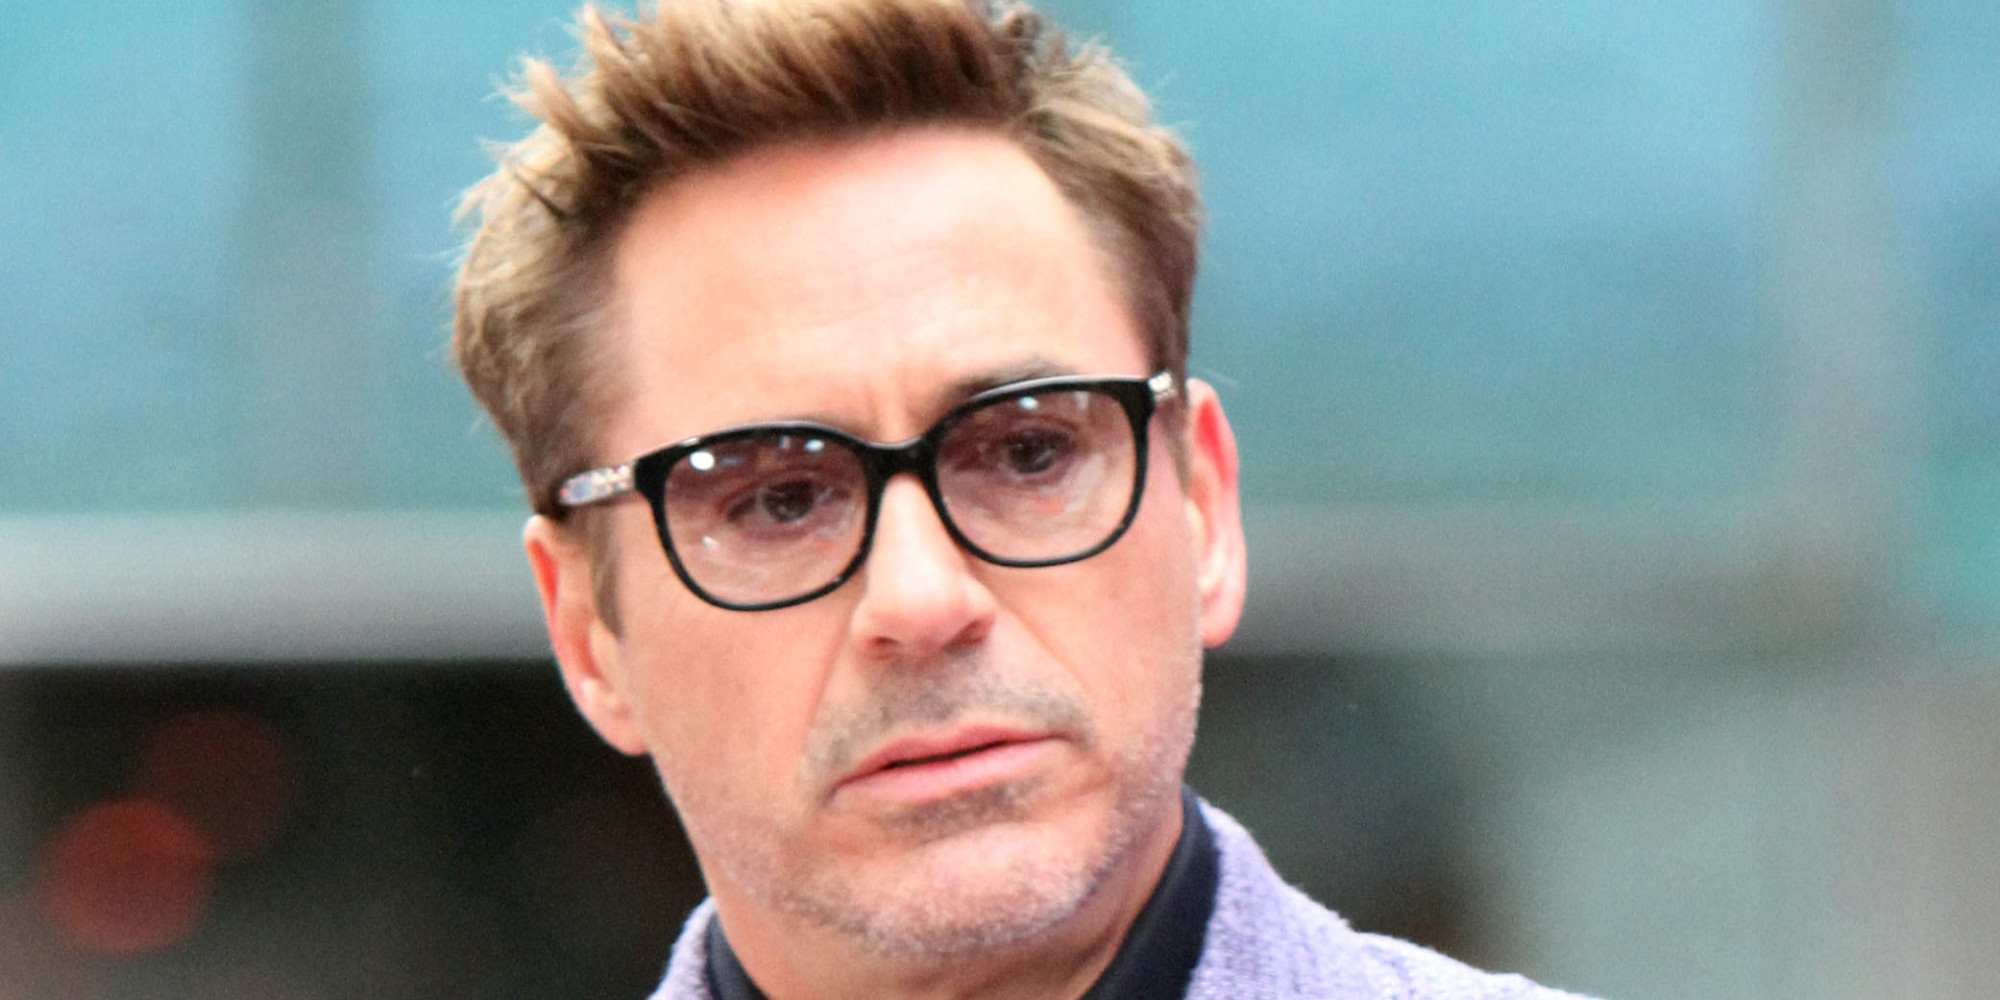 Robert Downey Jr. Wishes He'd Left That Uncomfortable Interview Sooner ... Robert Downey